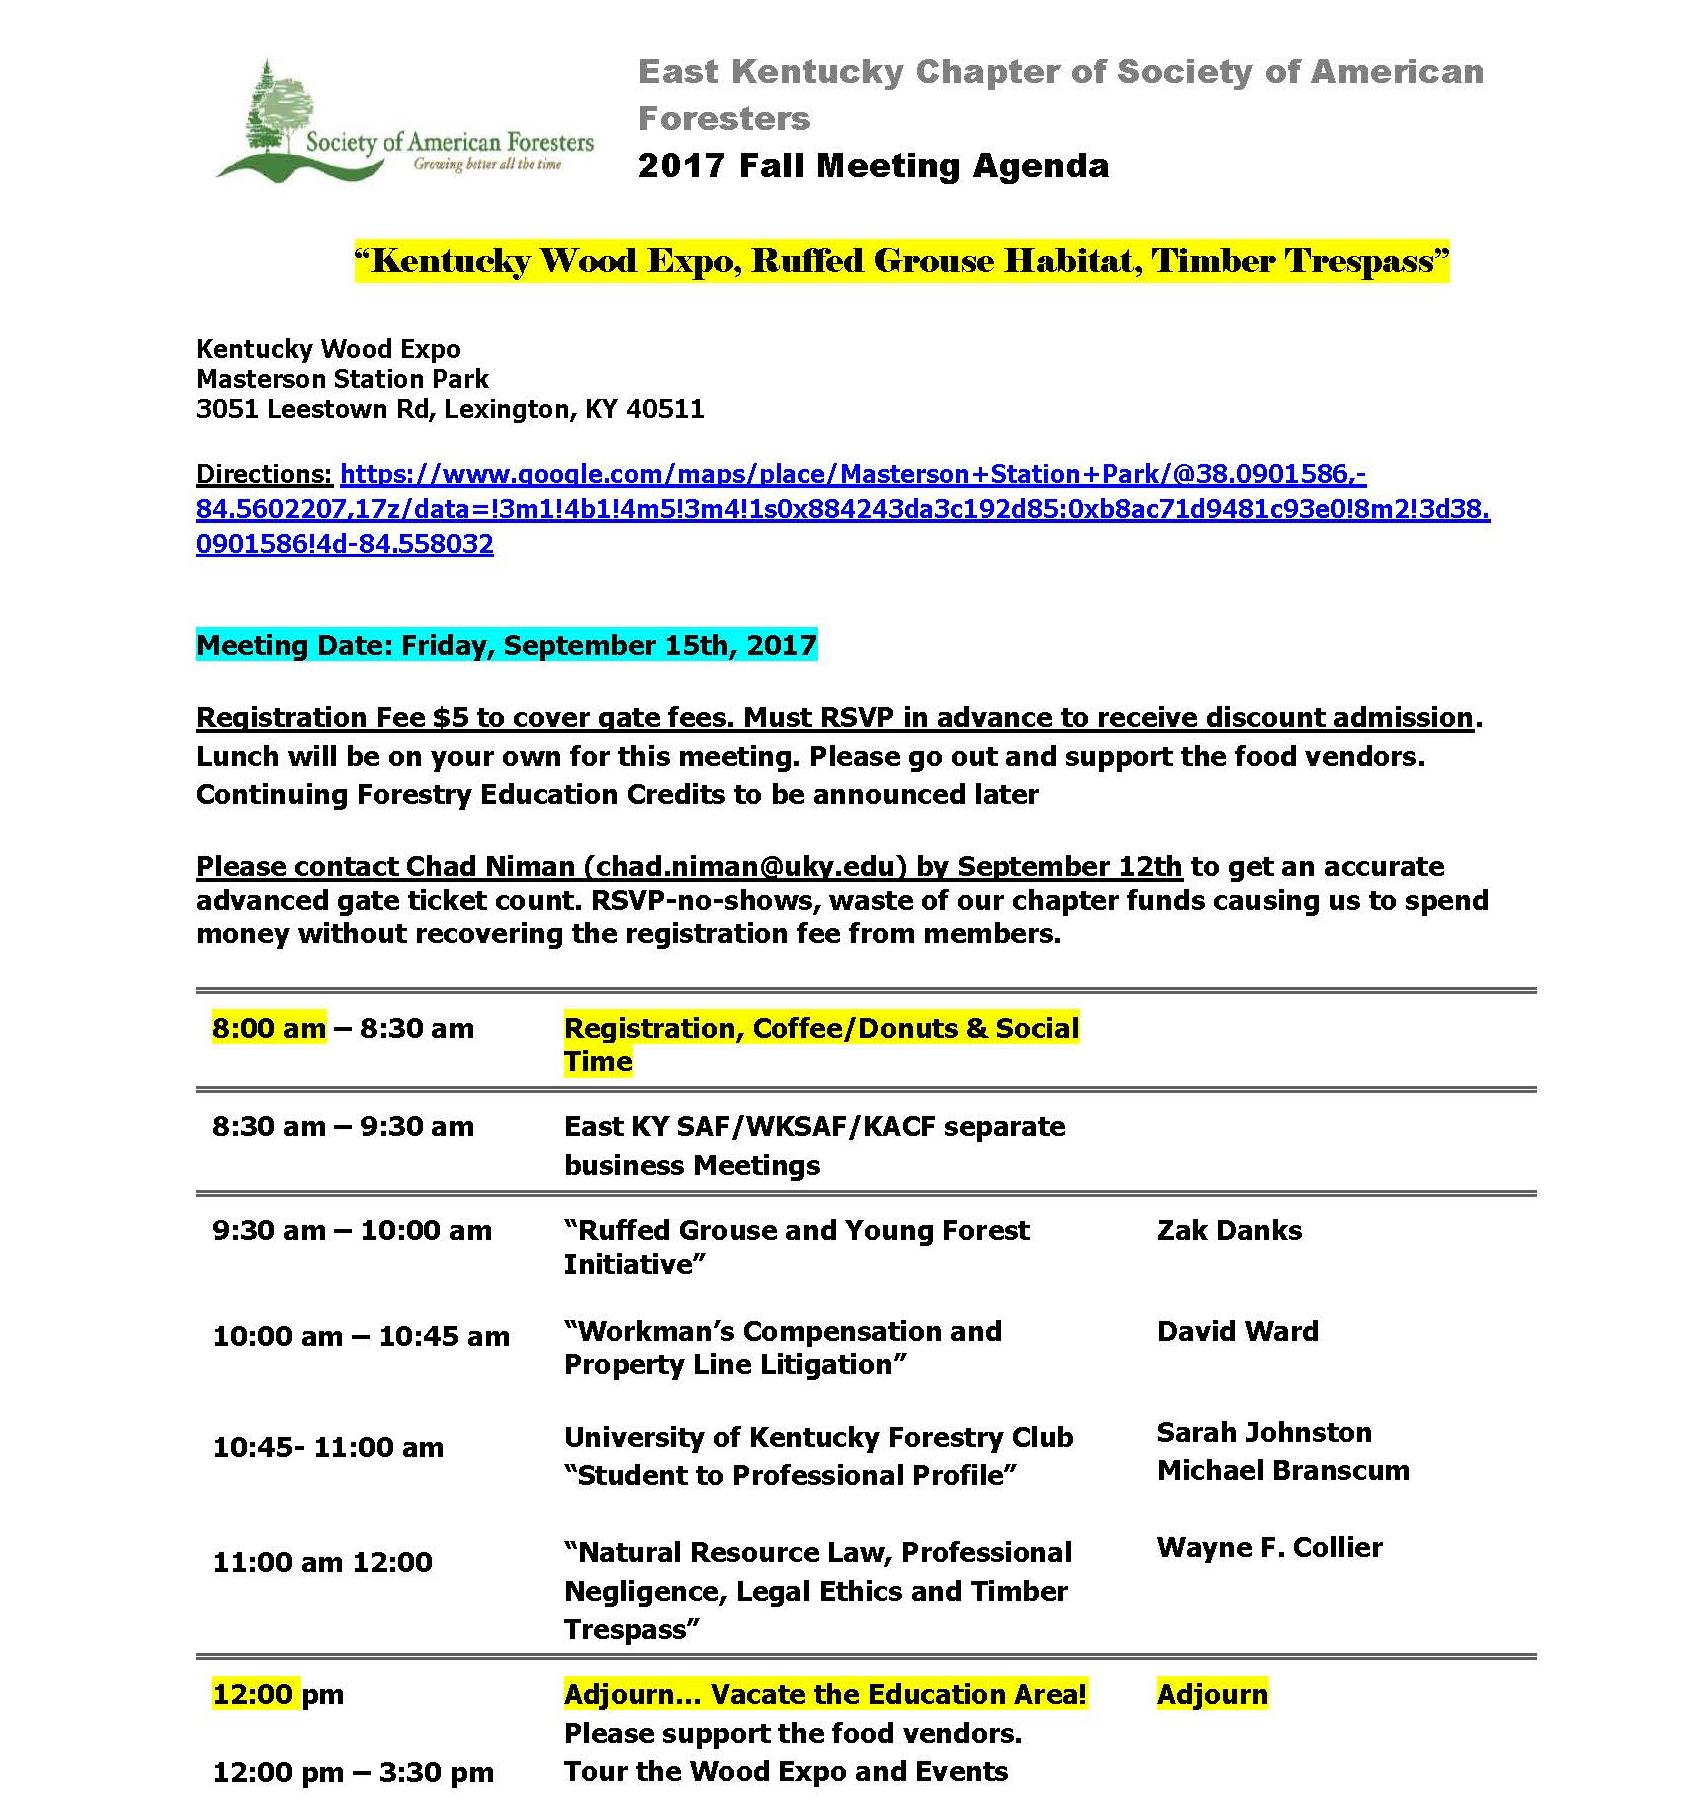 East Kentucky Chapter of Society of American Foresters 2017 Fall Meeting Agenda